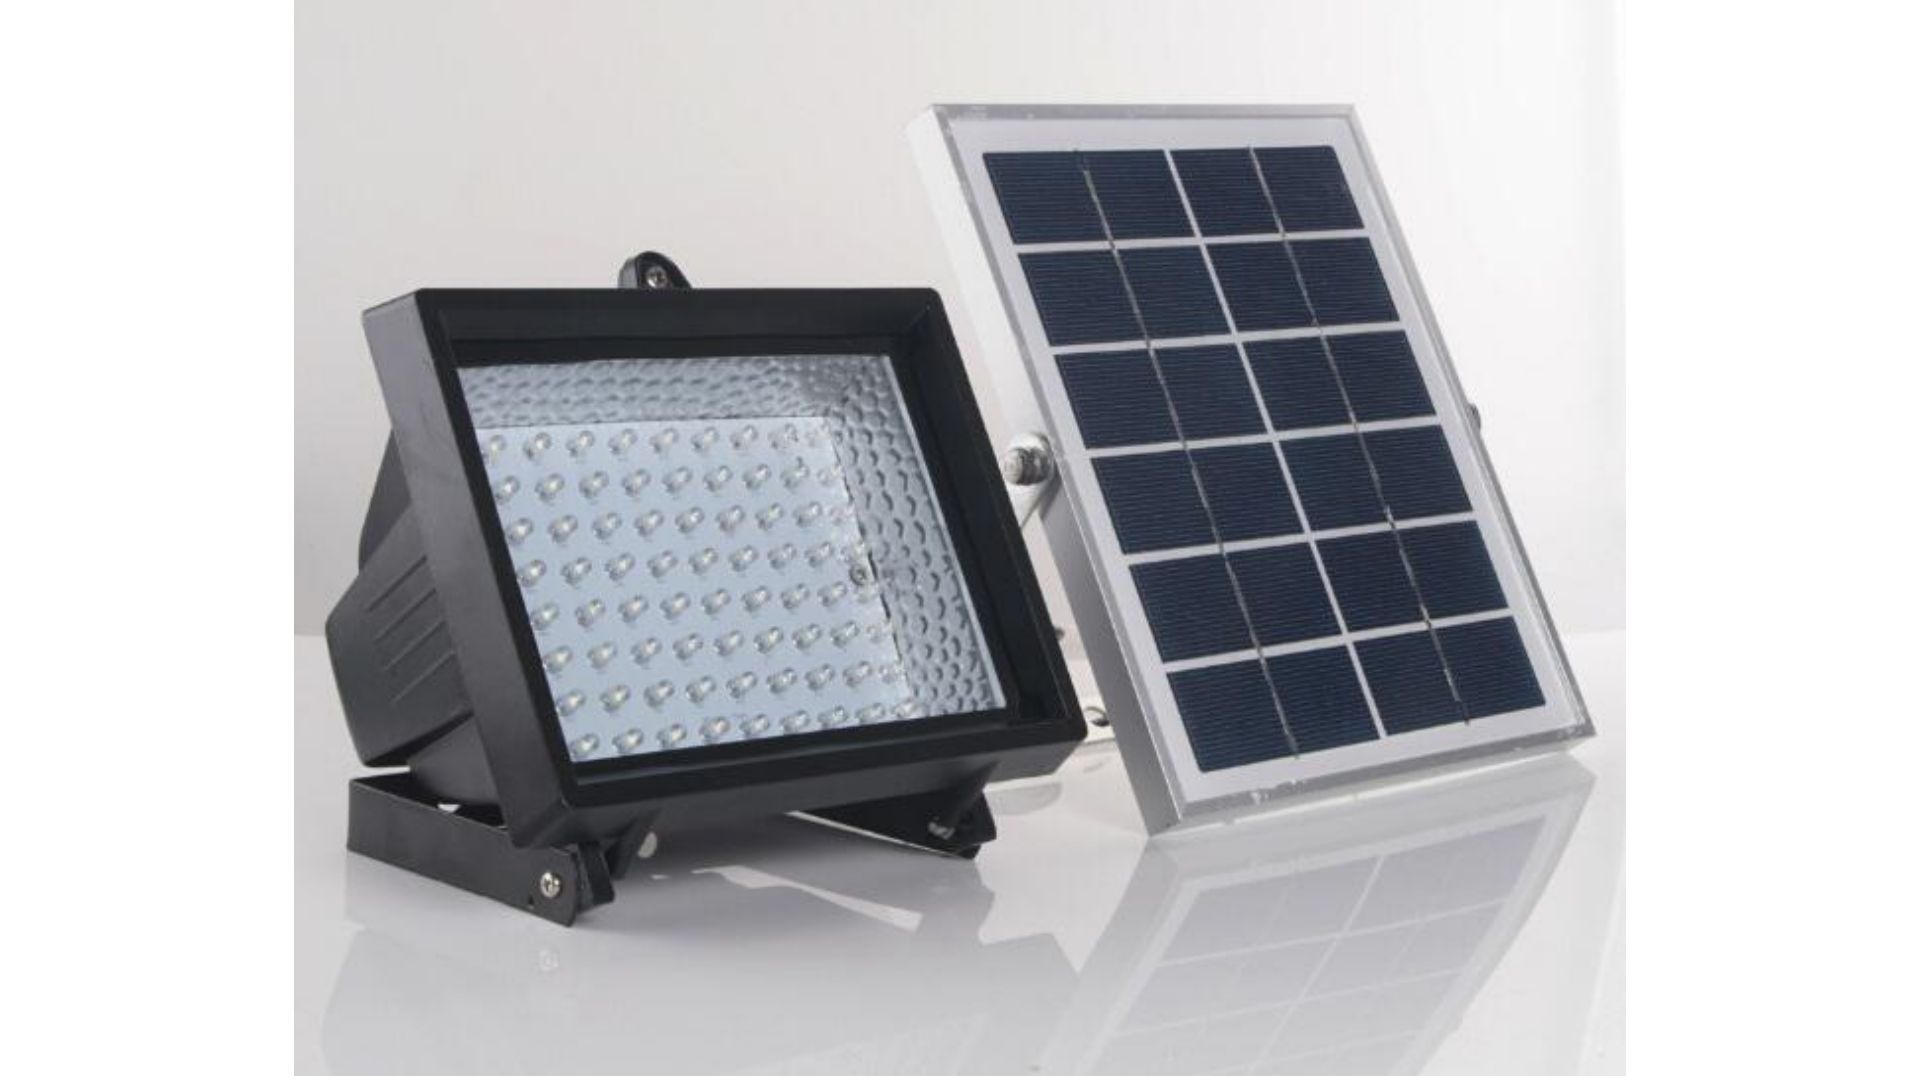 Solar Led Flood Lights Photos - pixelmari.com